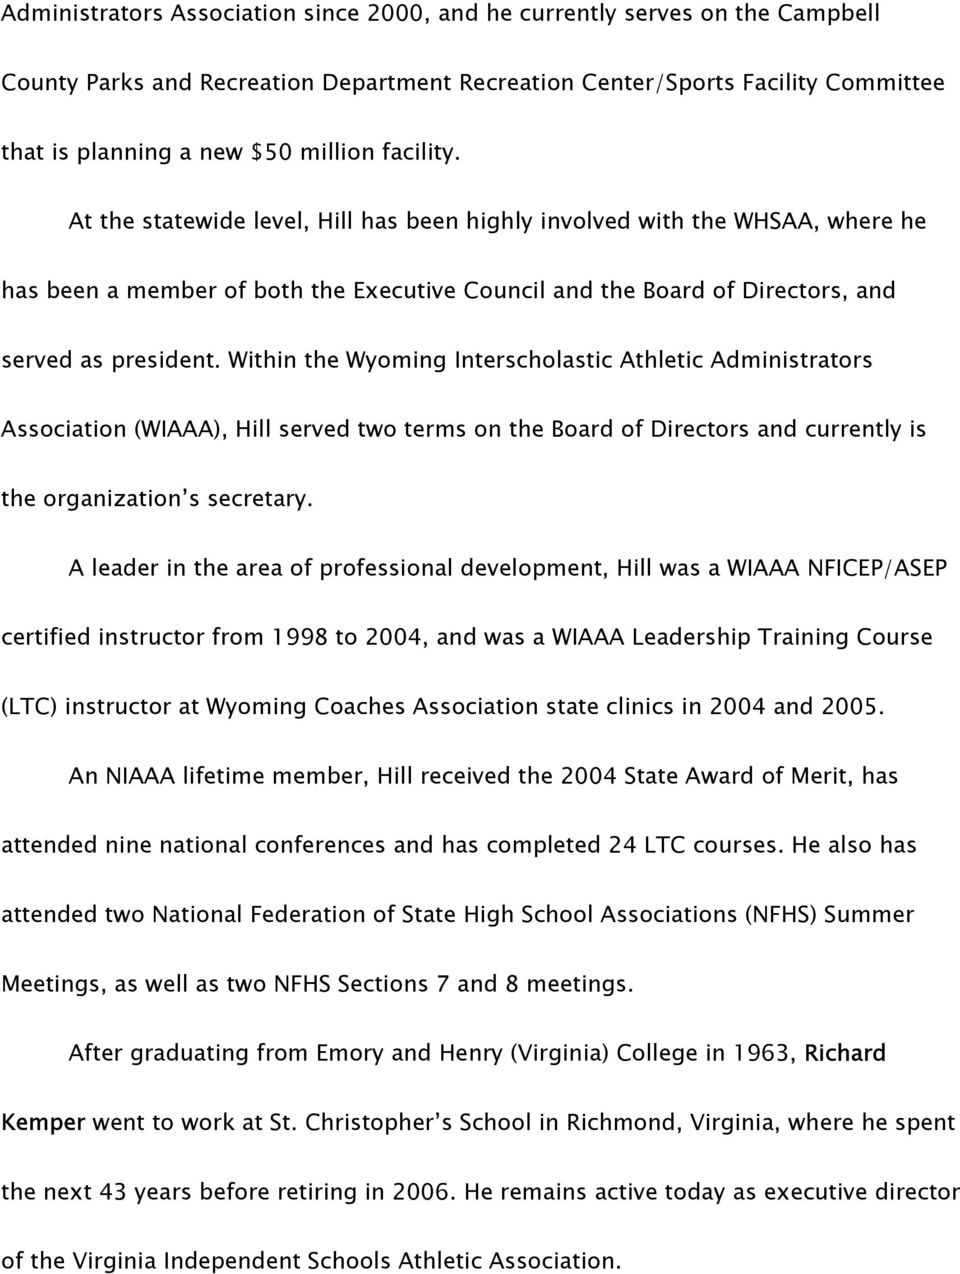 National Federation Of State High School Associations News Release